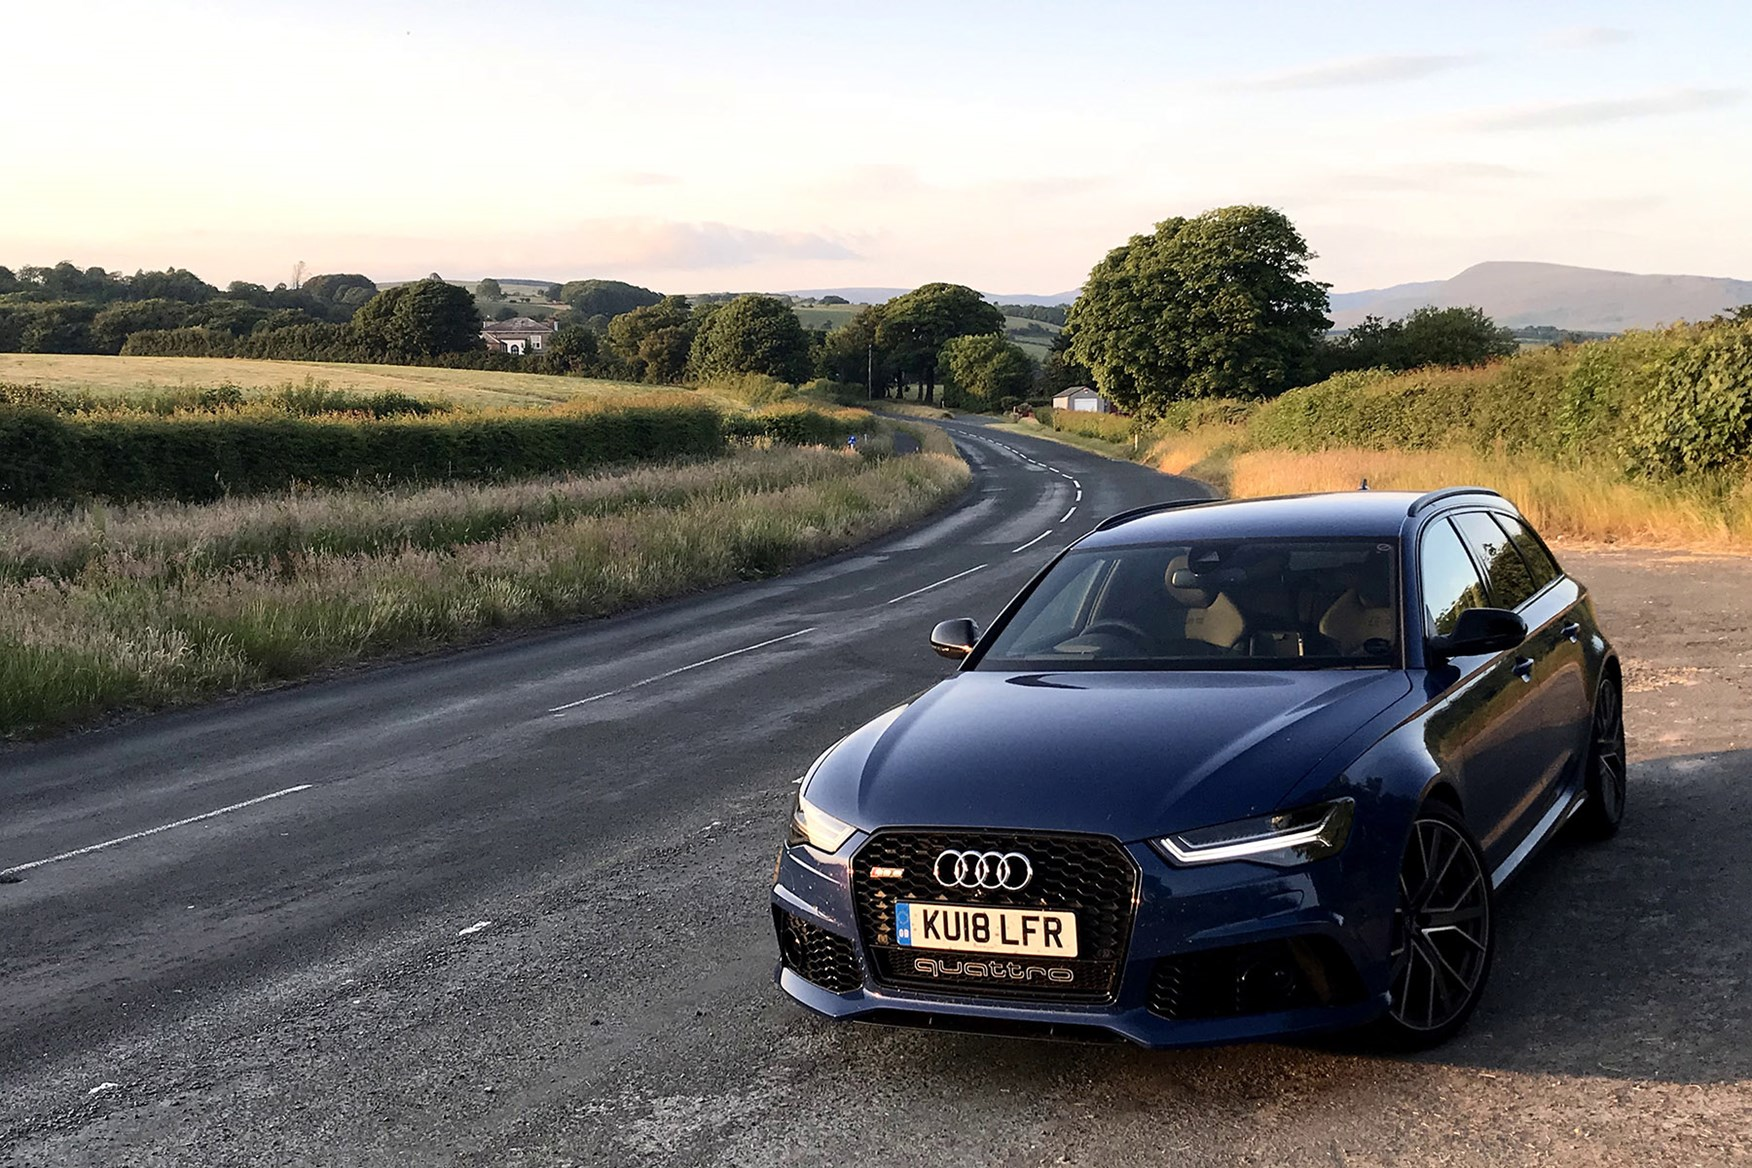 Audi RS6 Avant pauses for breath